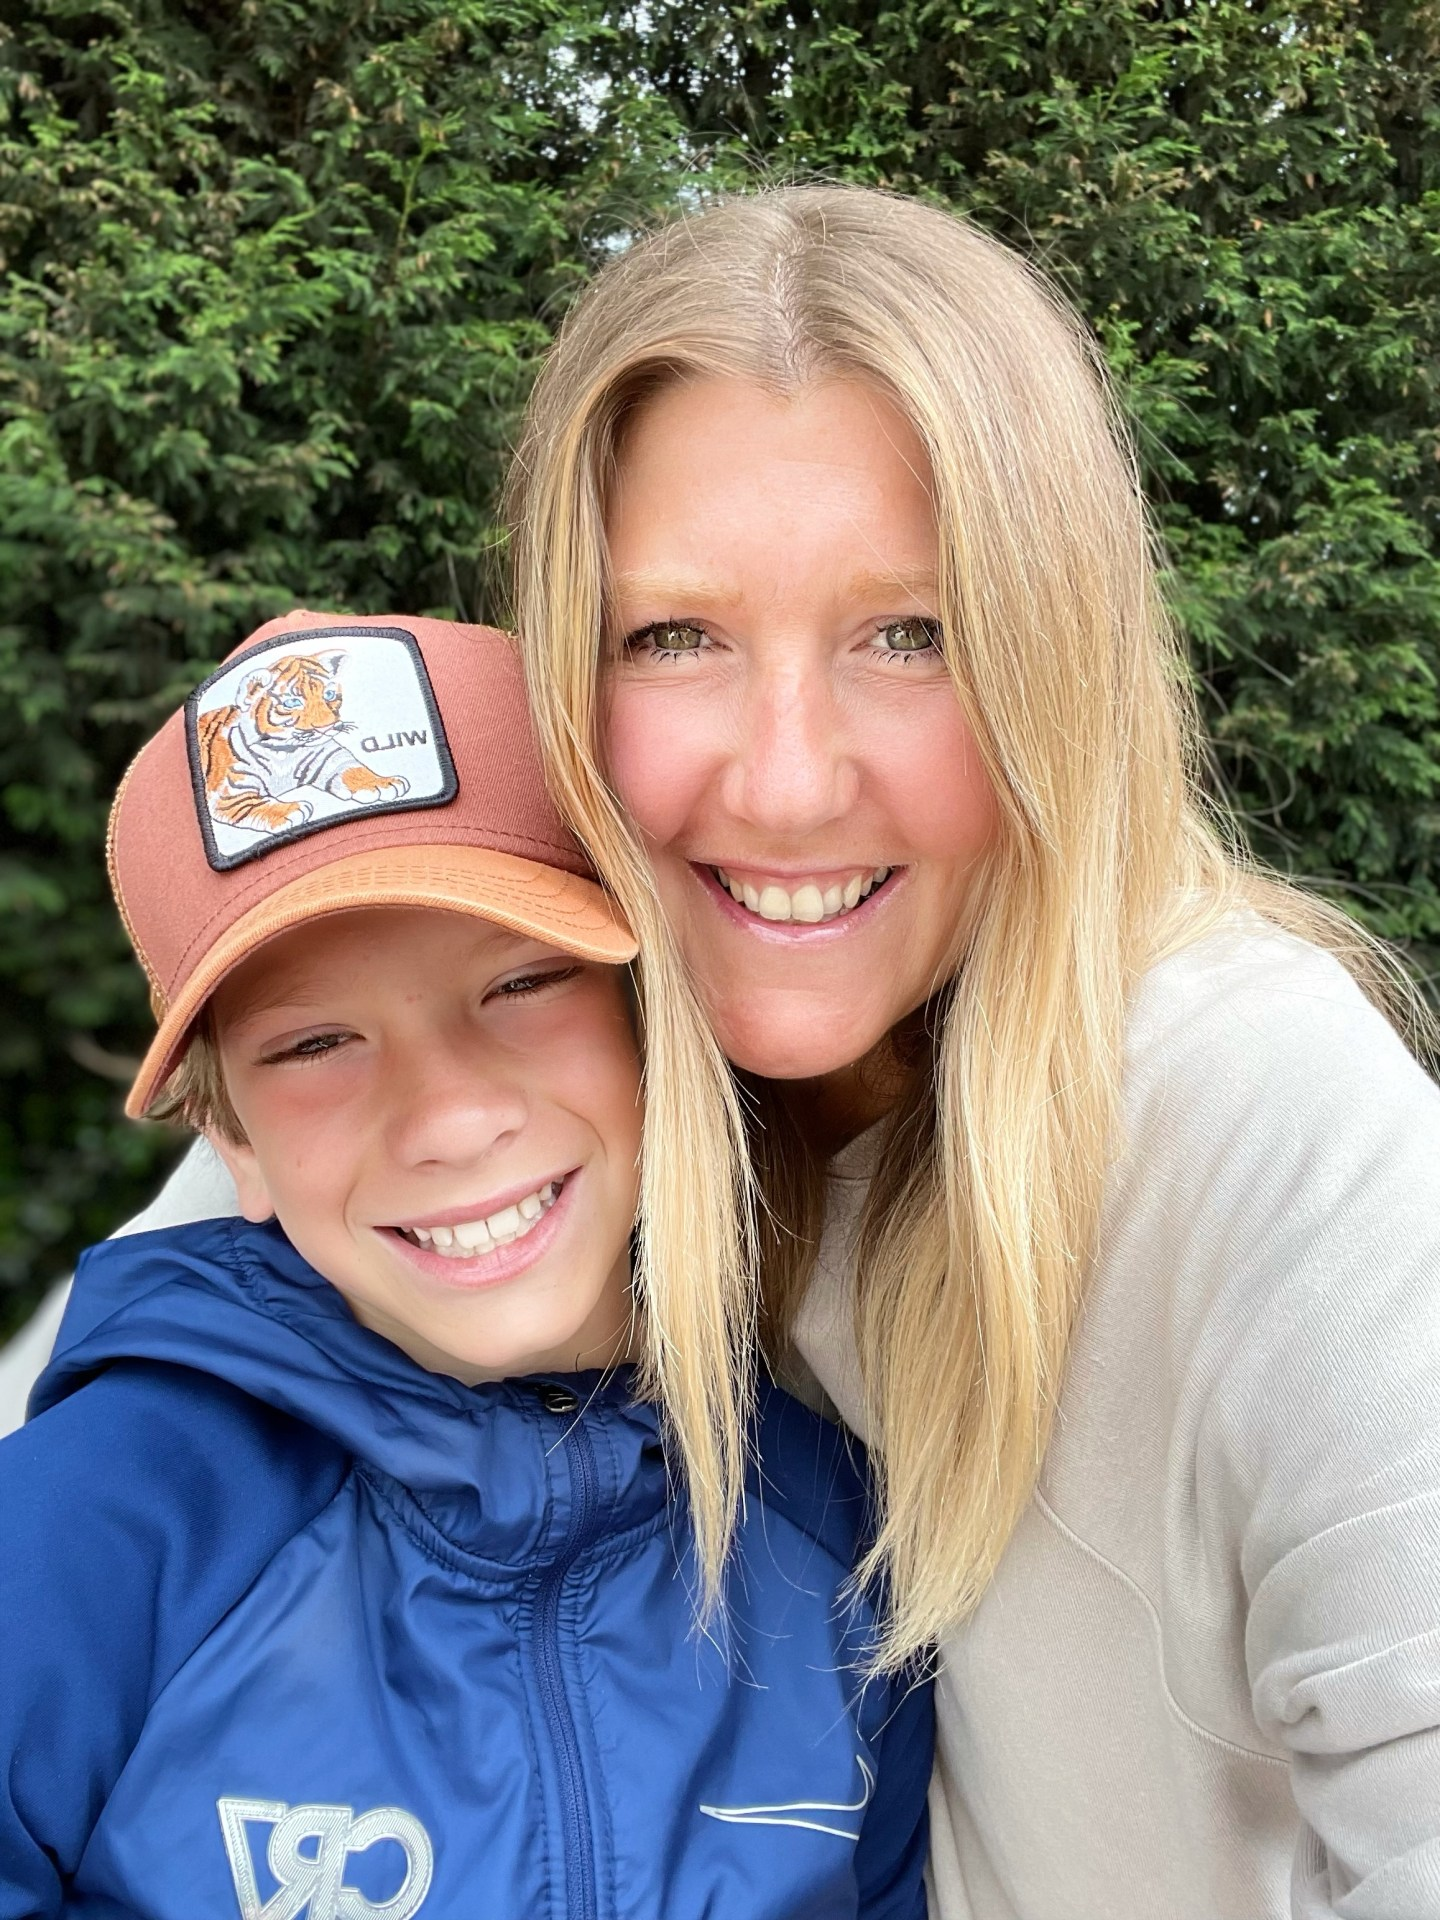 10 things I want my son to know on his 10th birthday